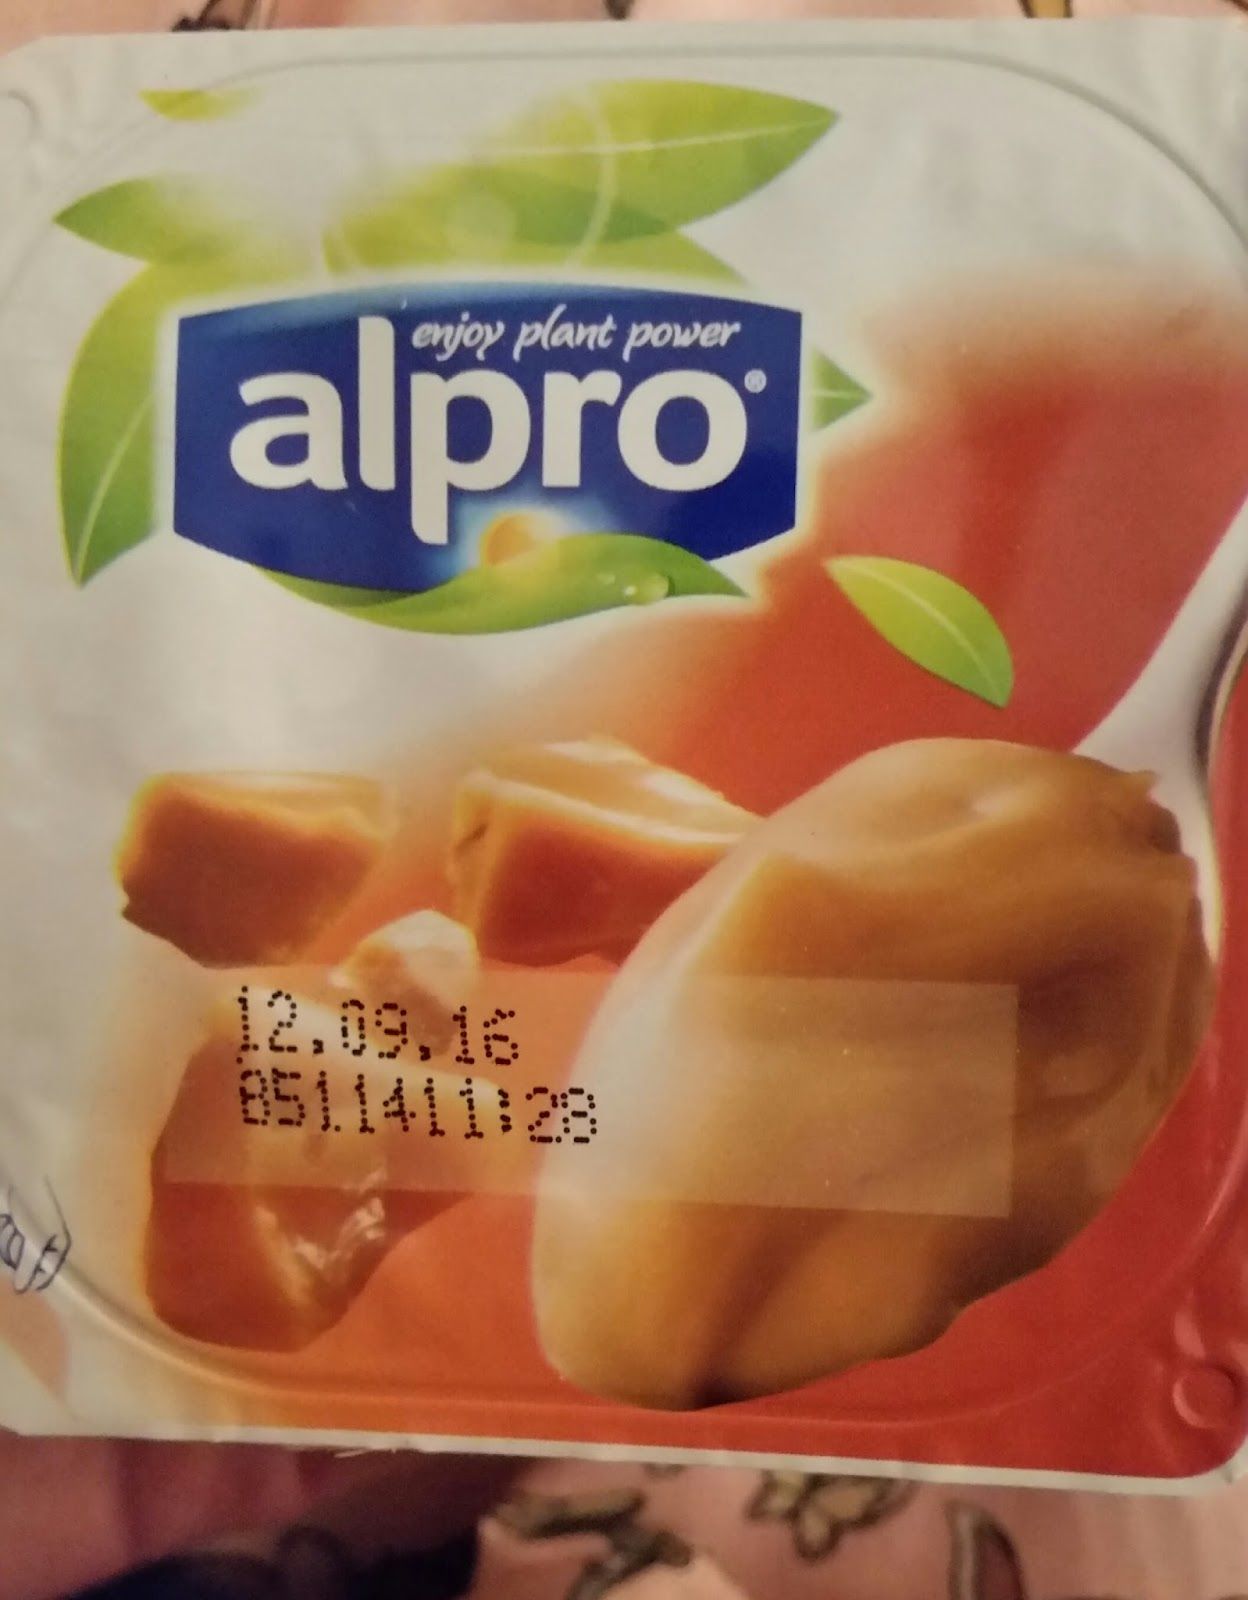 Trust Me Treats Alpro Caramel Soya Dessert Review